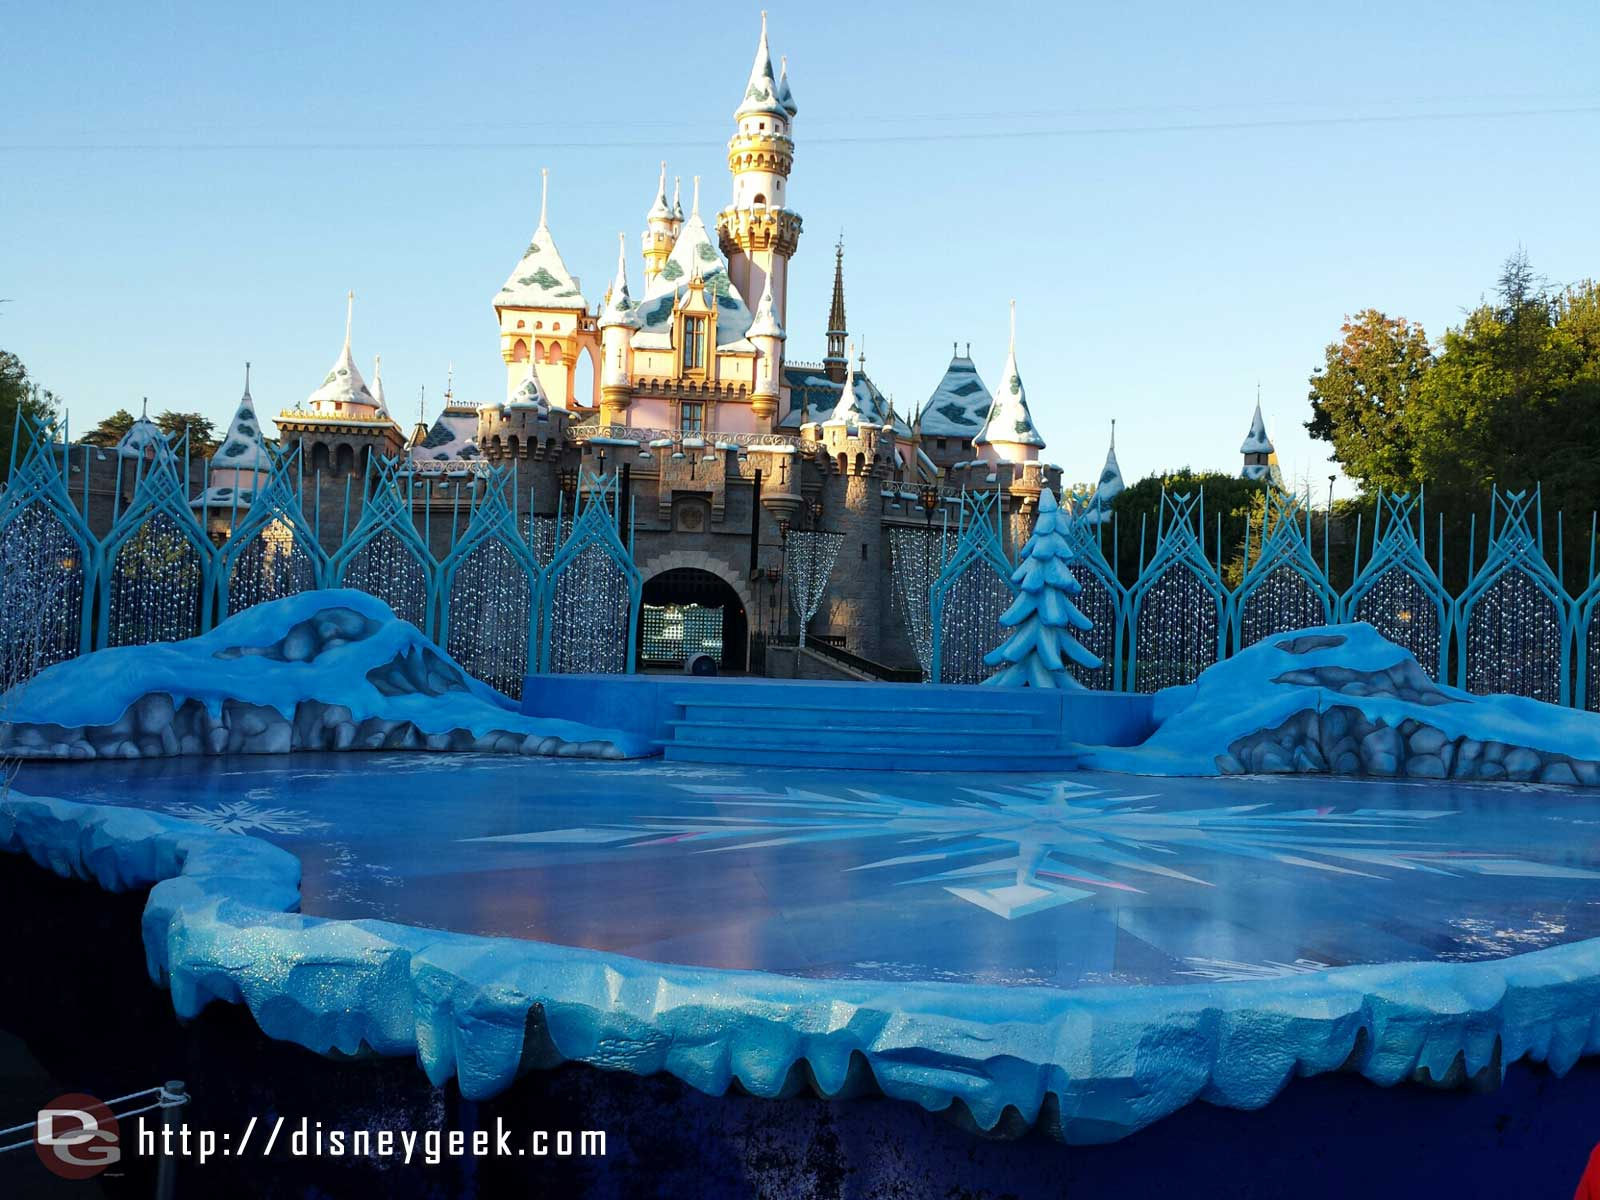 The Frozen inspired stage in front of Sleeping Beauty Castle #Disneyland